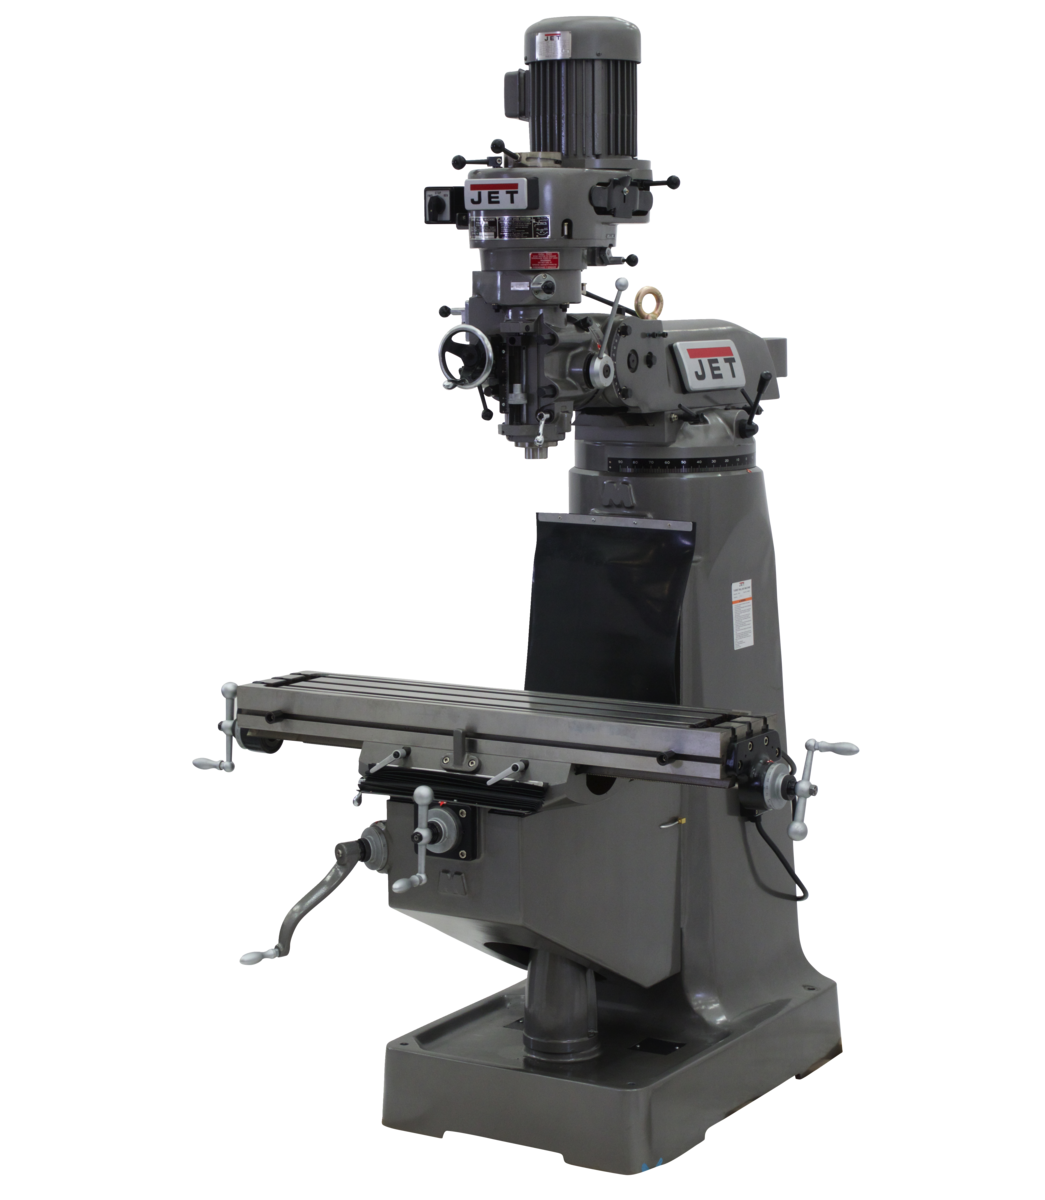 JTM-2 Mill With 3-Axis Newall DP500 DRO (Quill)